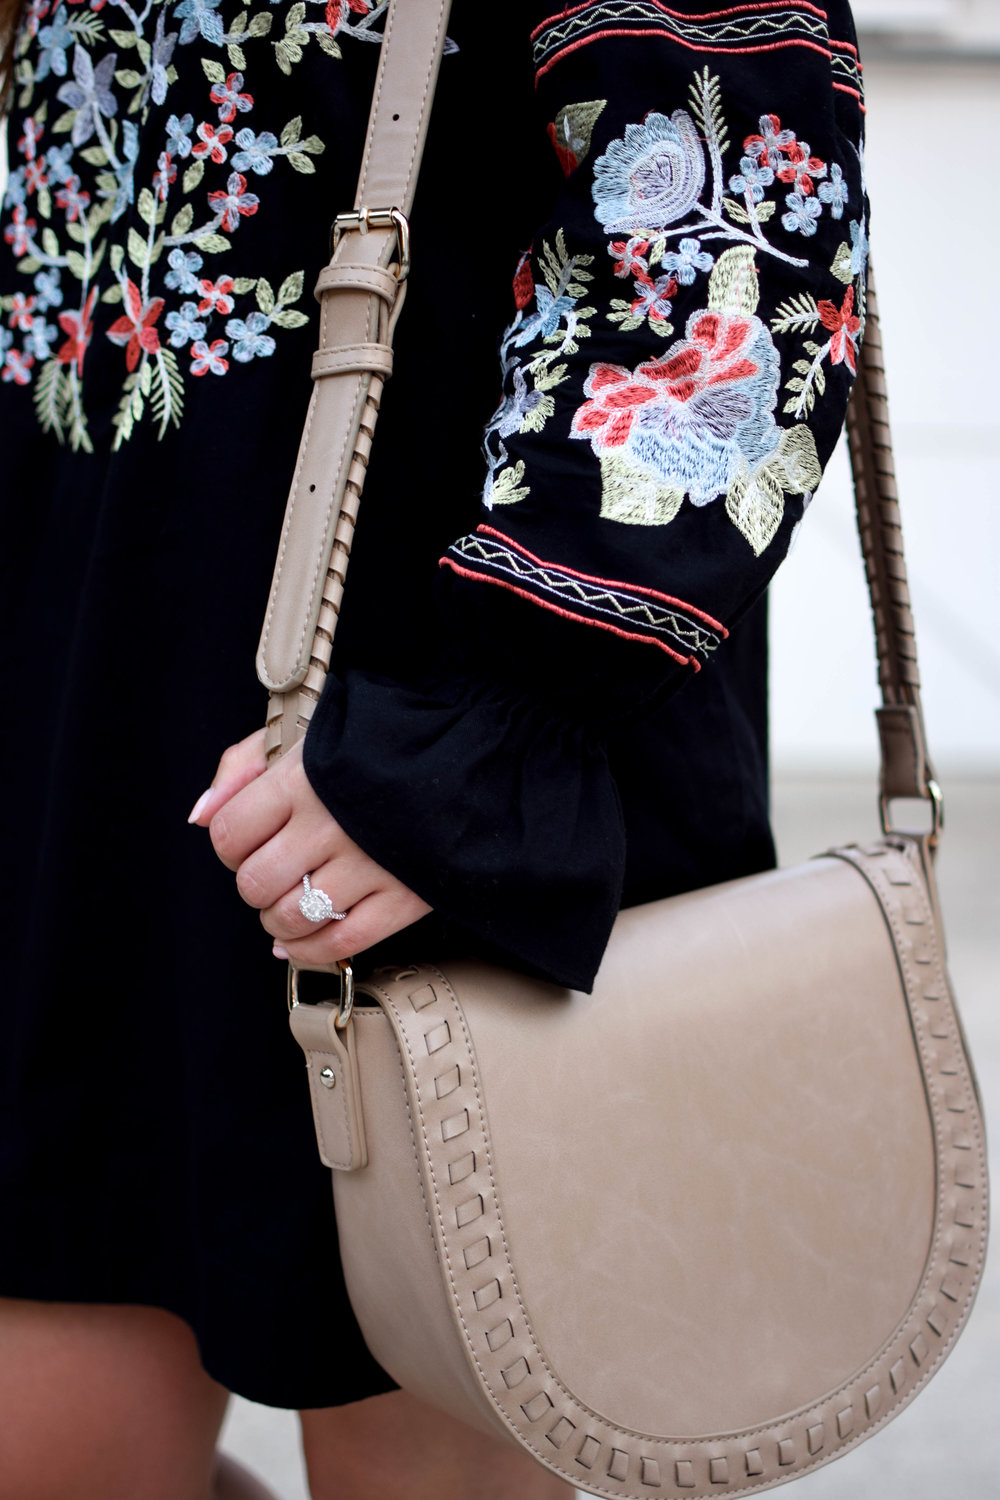 free people dress / off the shoulder dress / embroidered dress / fall transition outfit idea / sole society cross body bag